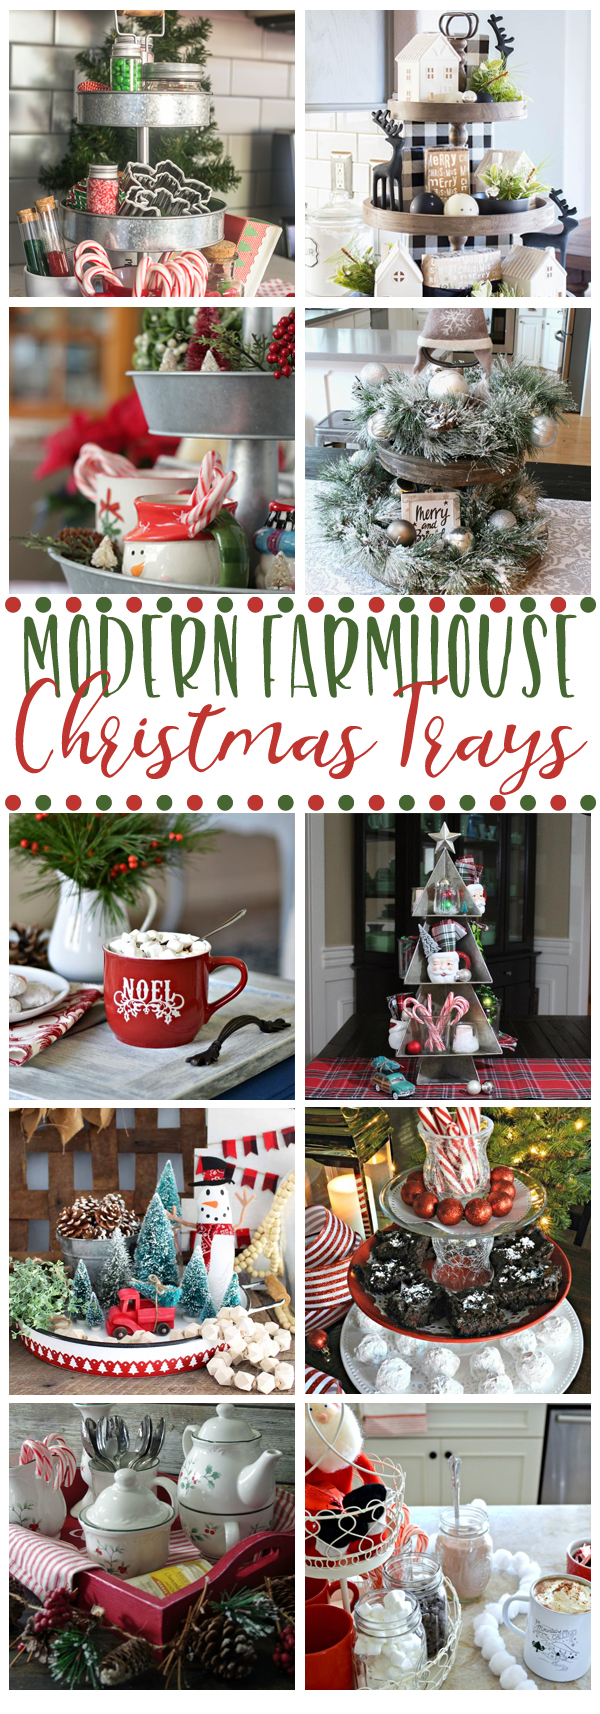 Christmas tray ideas with farmhouse style for your holiday home!